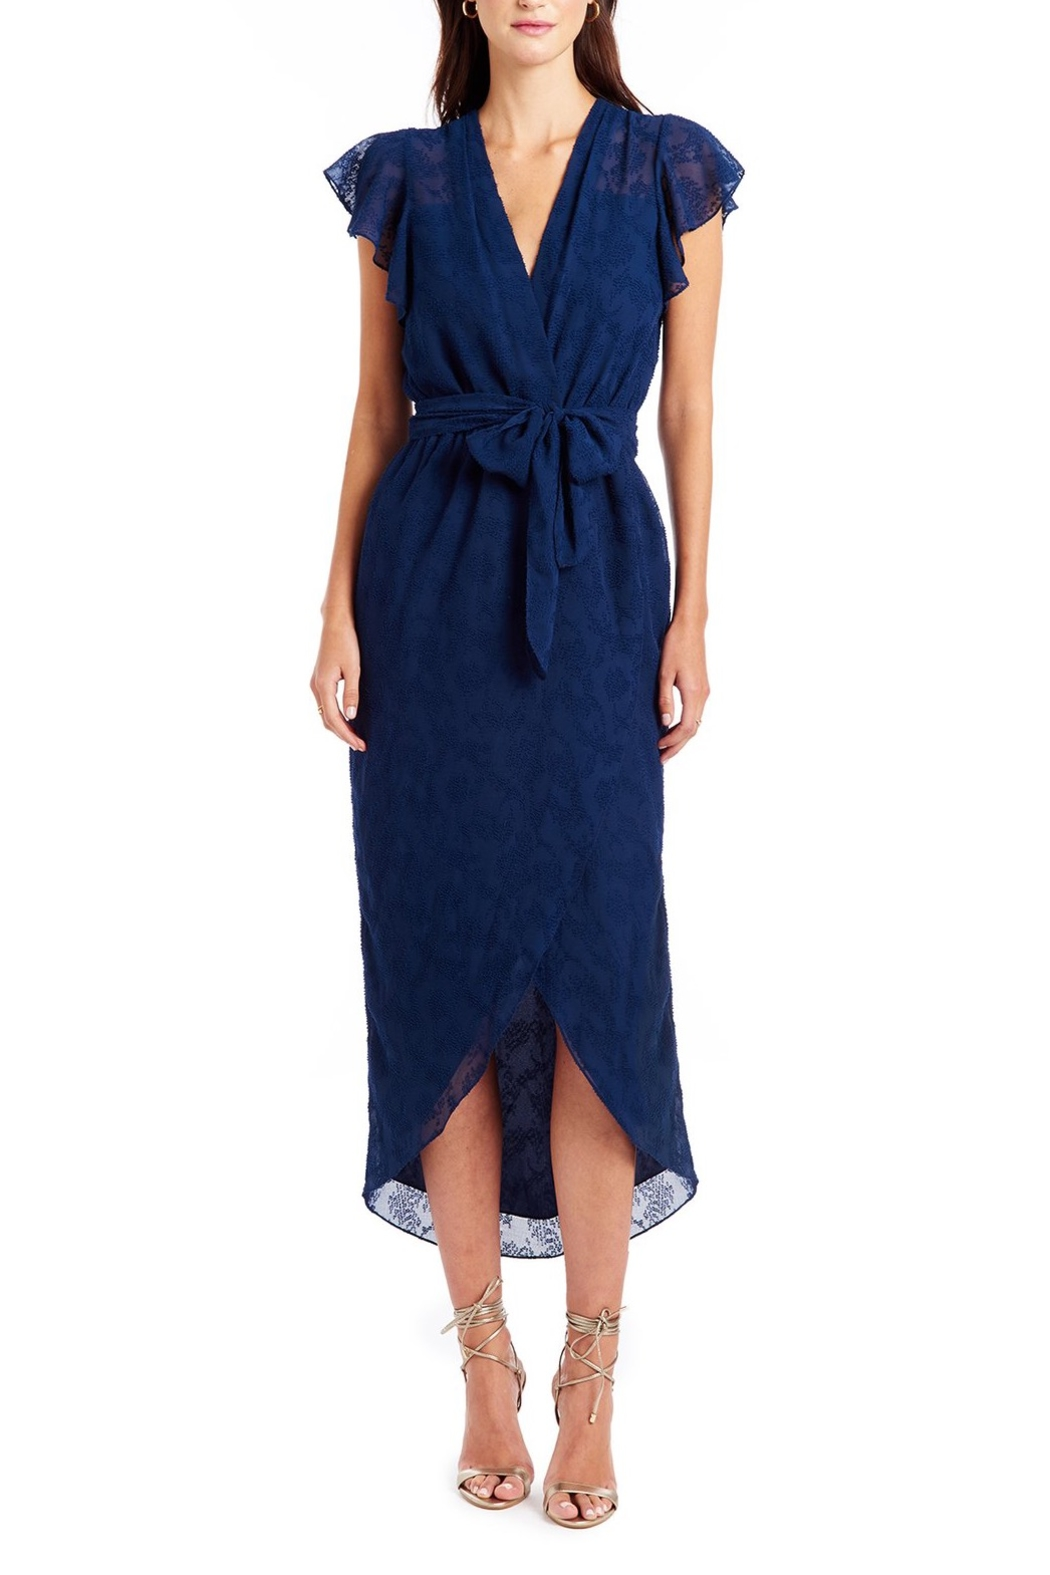 Amanda Uprichard Zelle Faux Wrap Midi Dress - Main Image